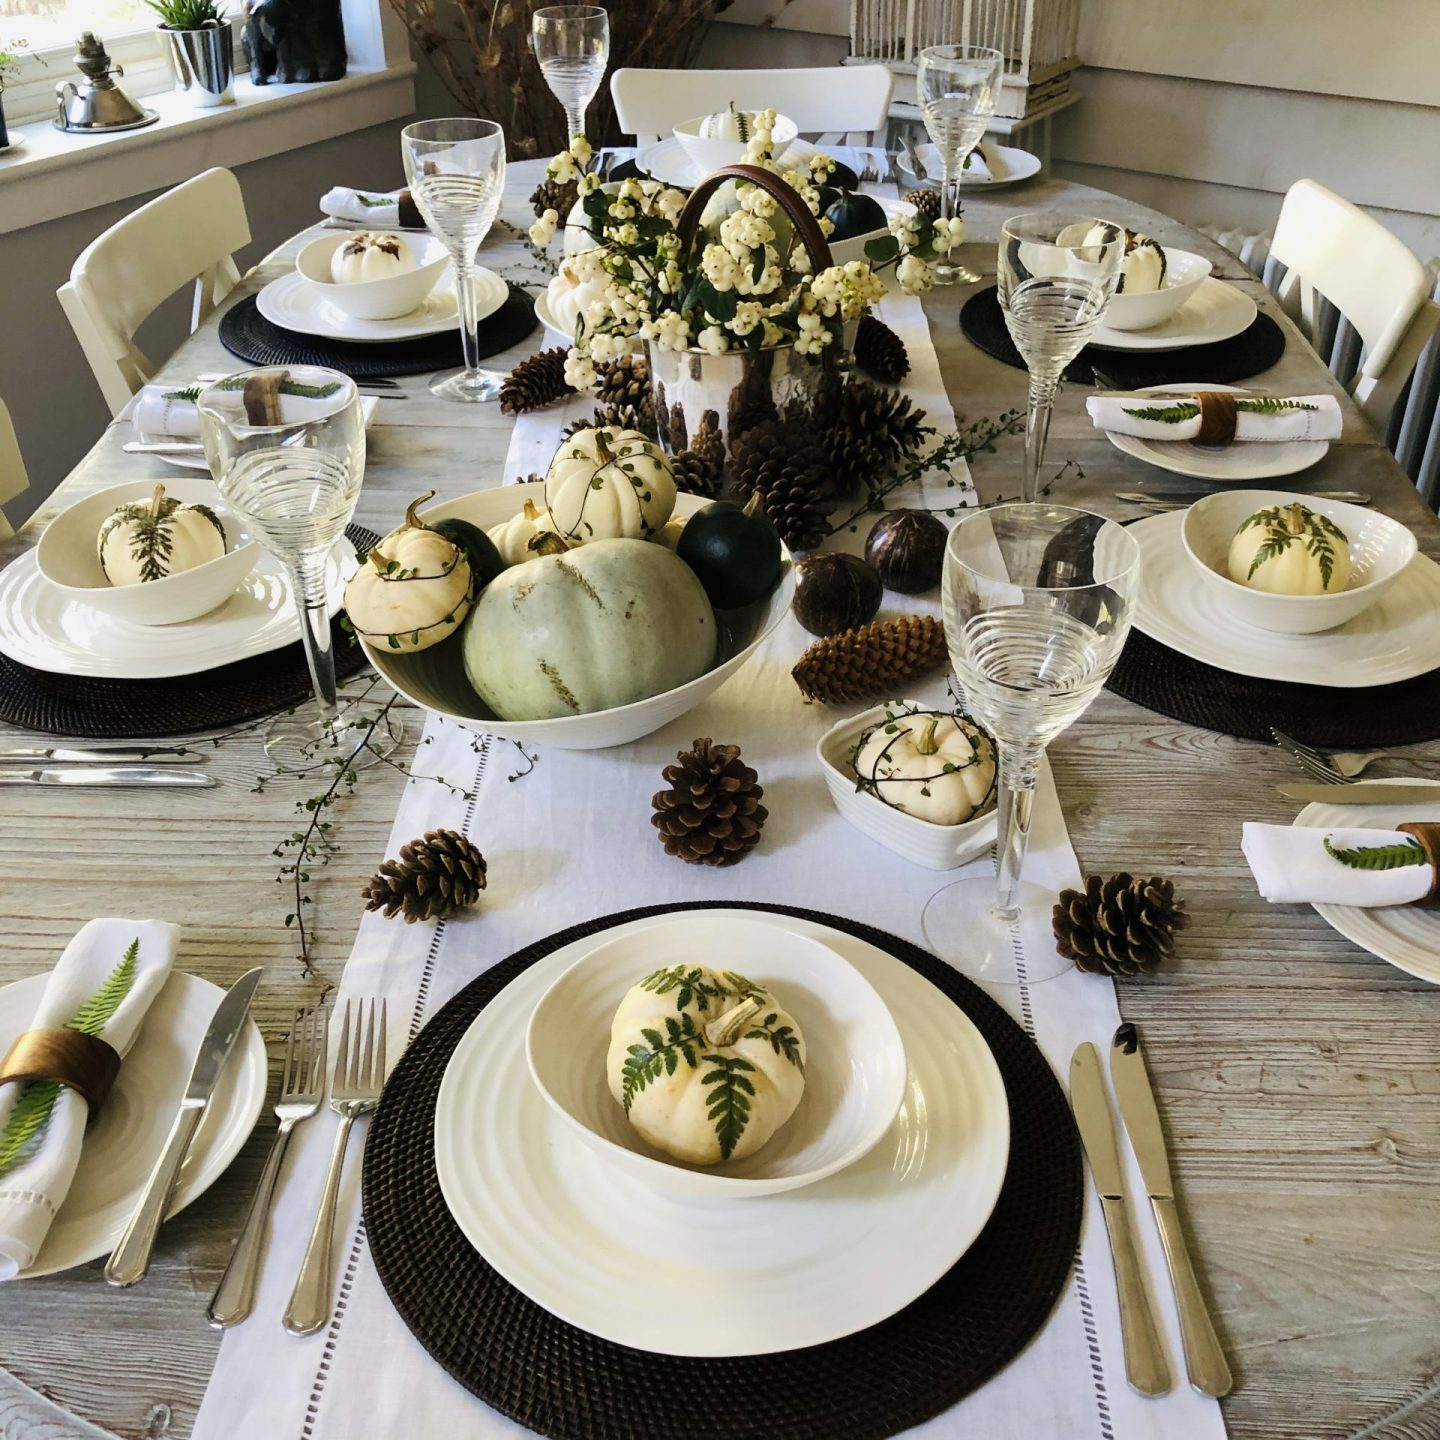 Autumn table styling using white pumpkins.